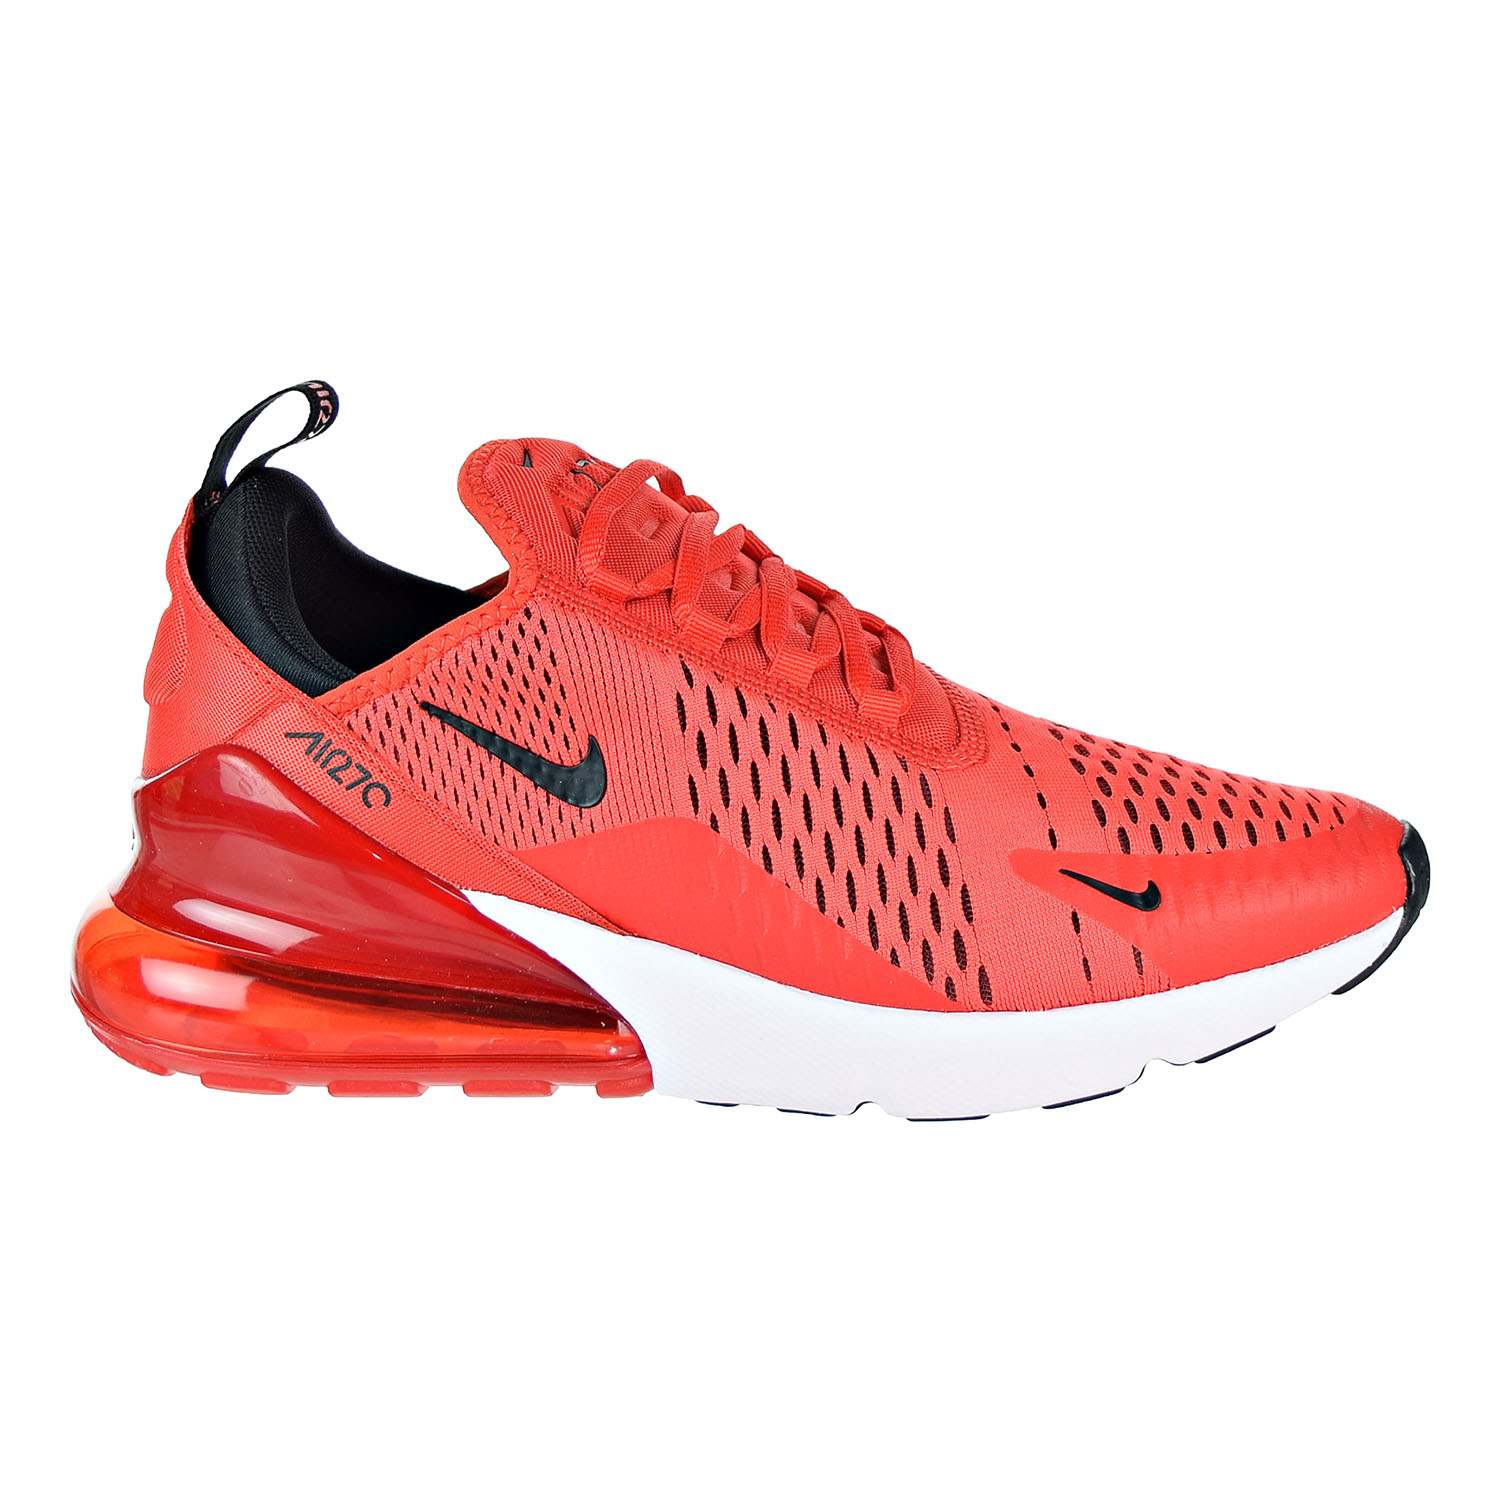 Details about Nike Air Max 270 Men's Shoes Habanero RedBlackWhite AH8050 601